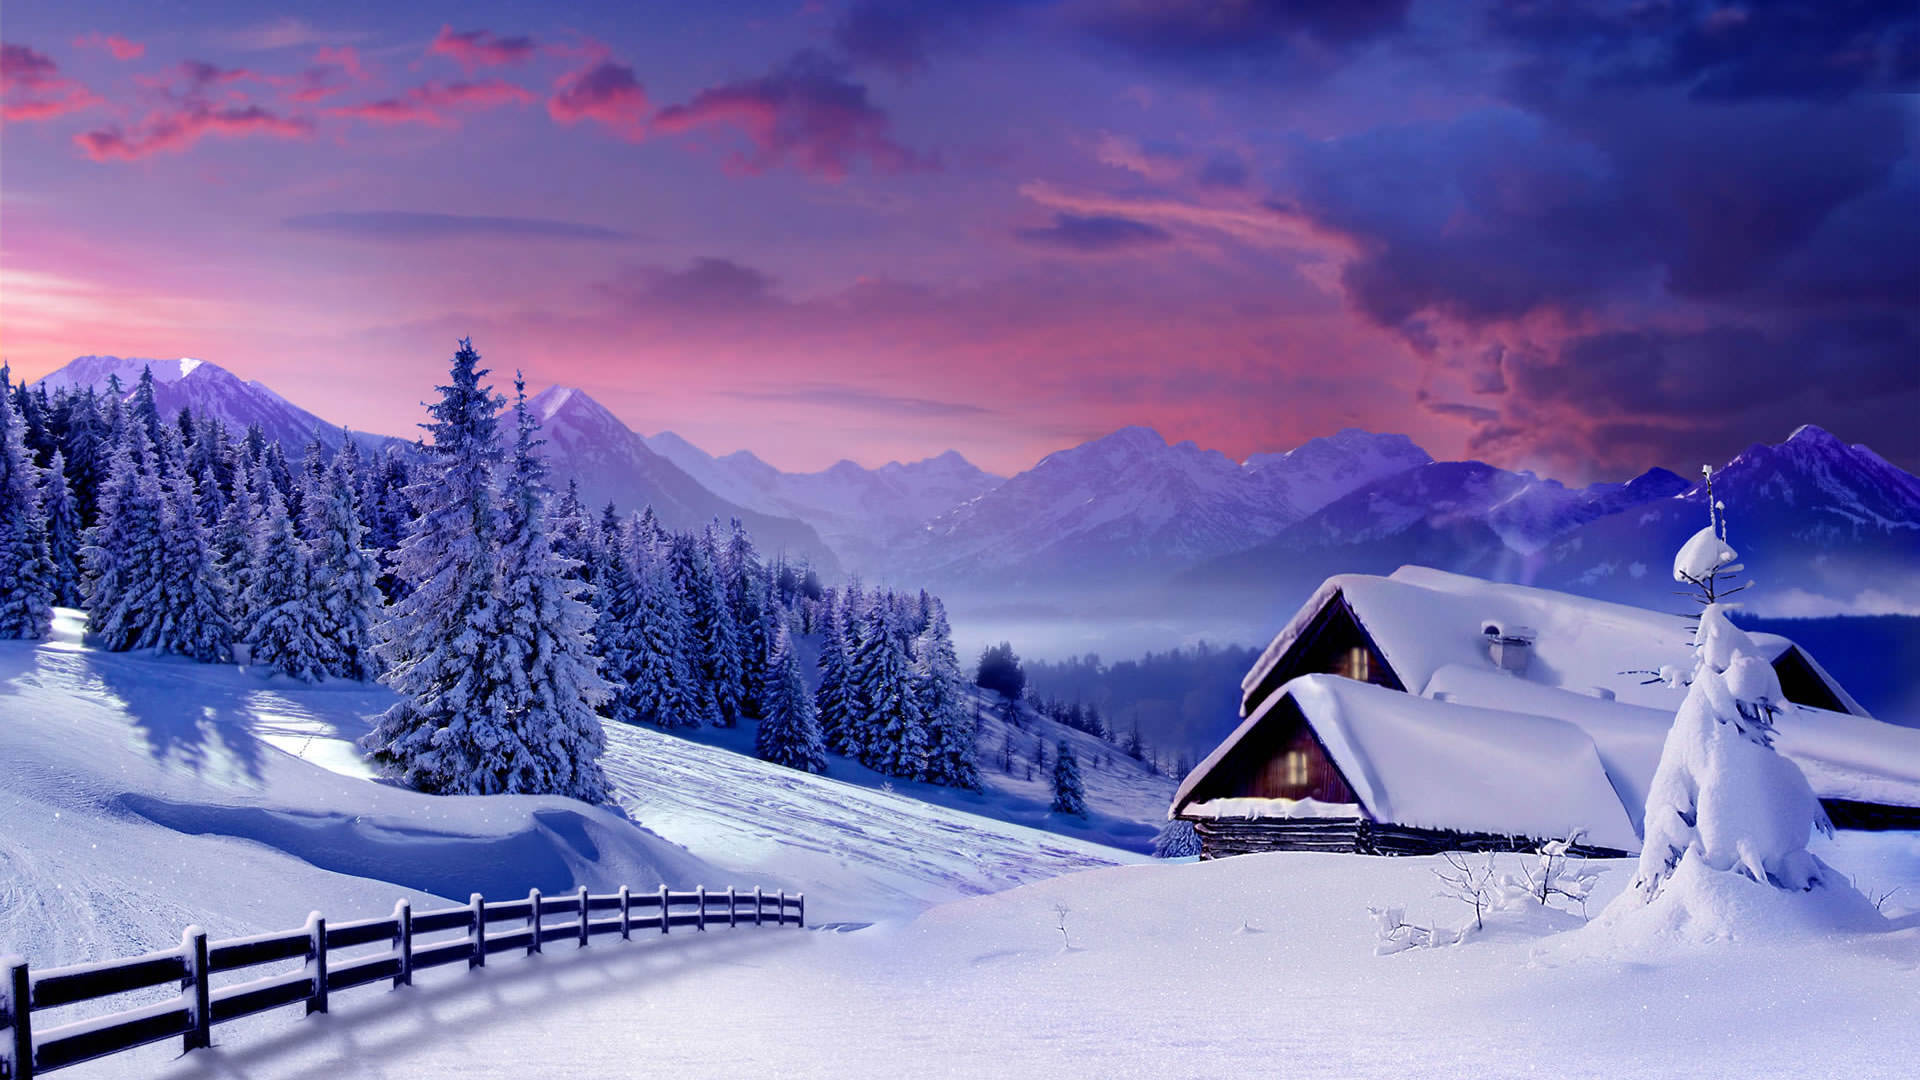 Beautiful Winter Wallpaper 1920x1080 1920x1080